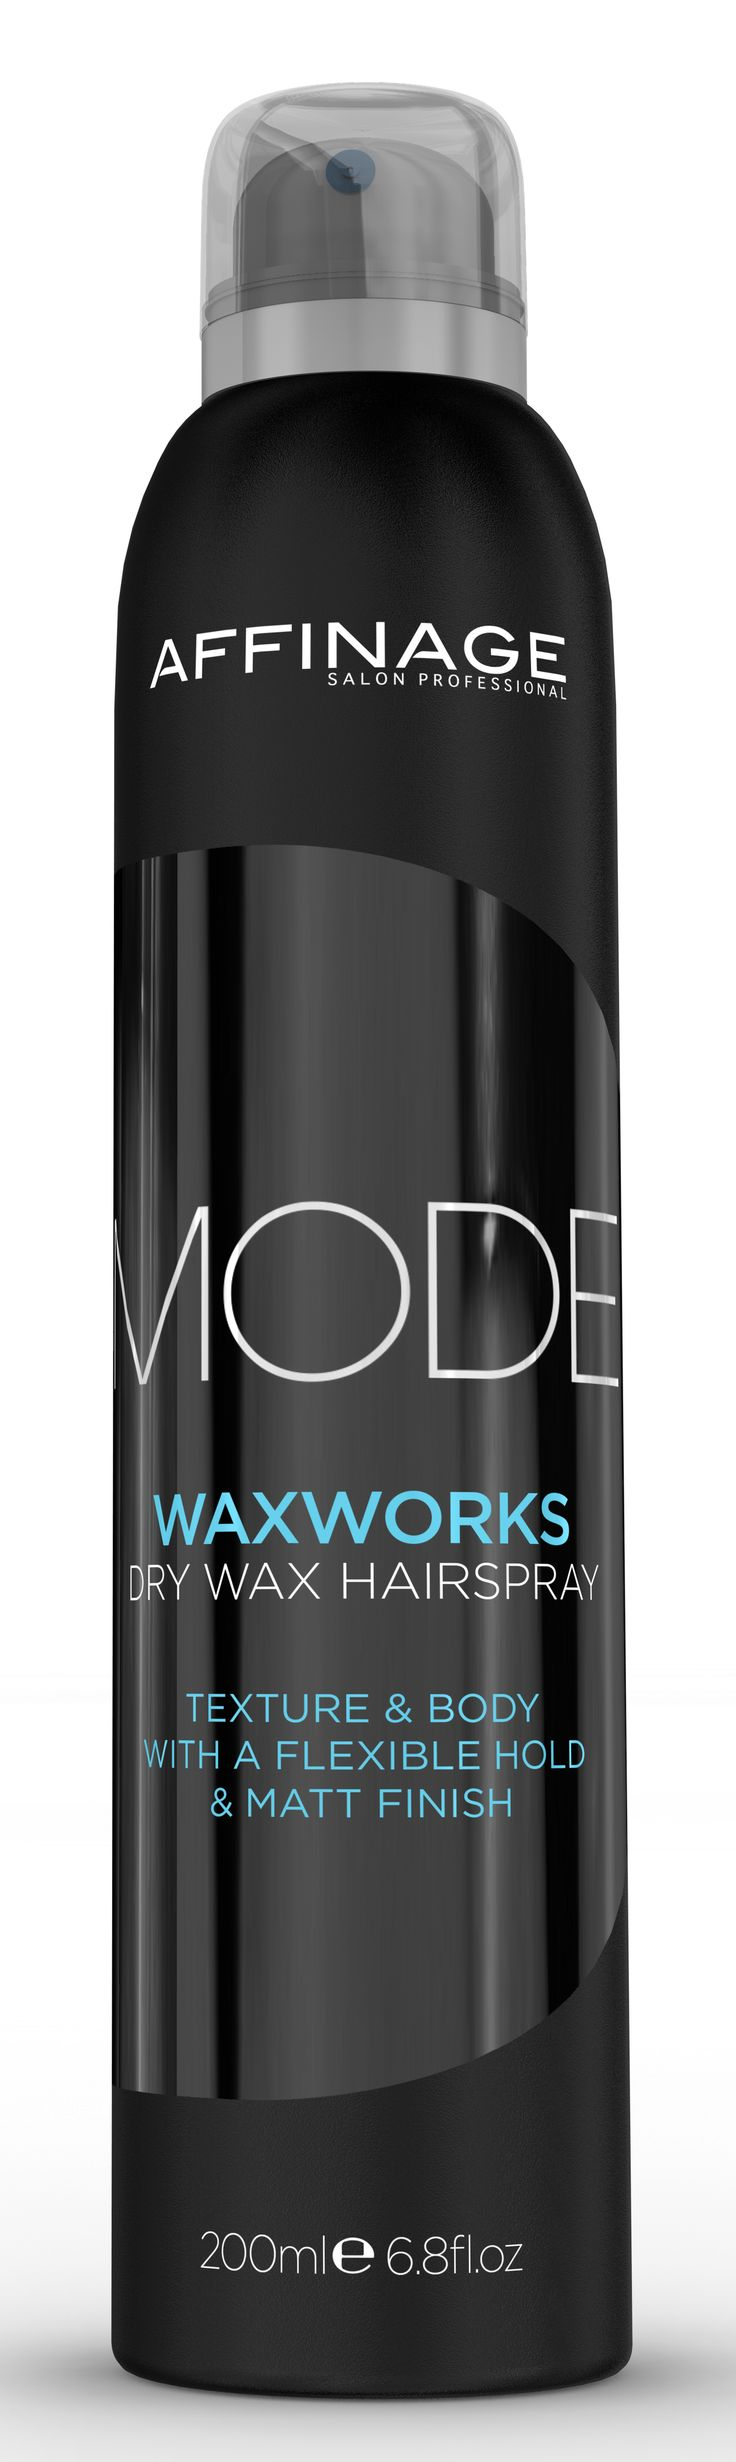 Affinage Mode Waxworks 200ml.